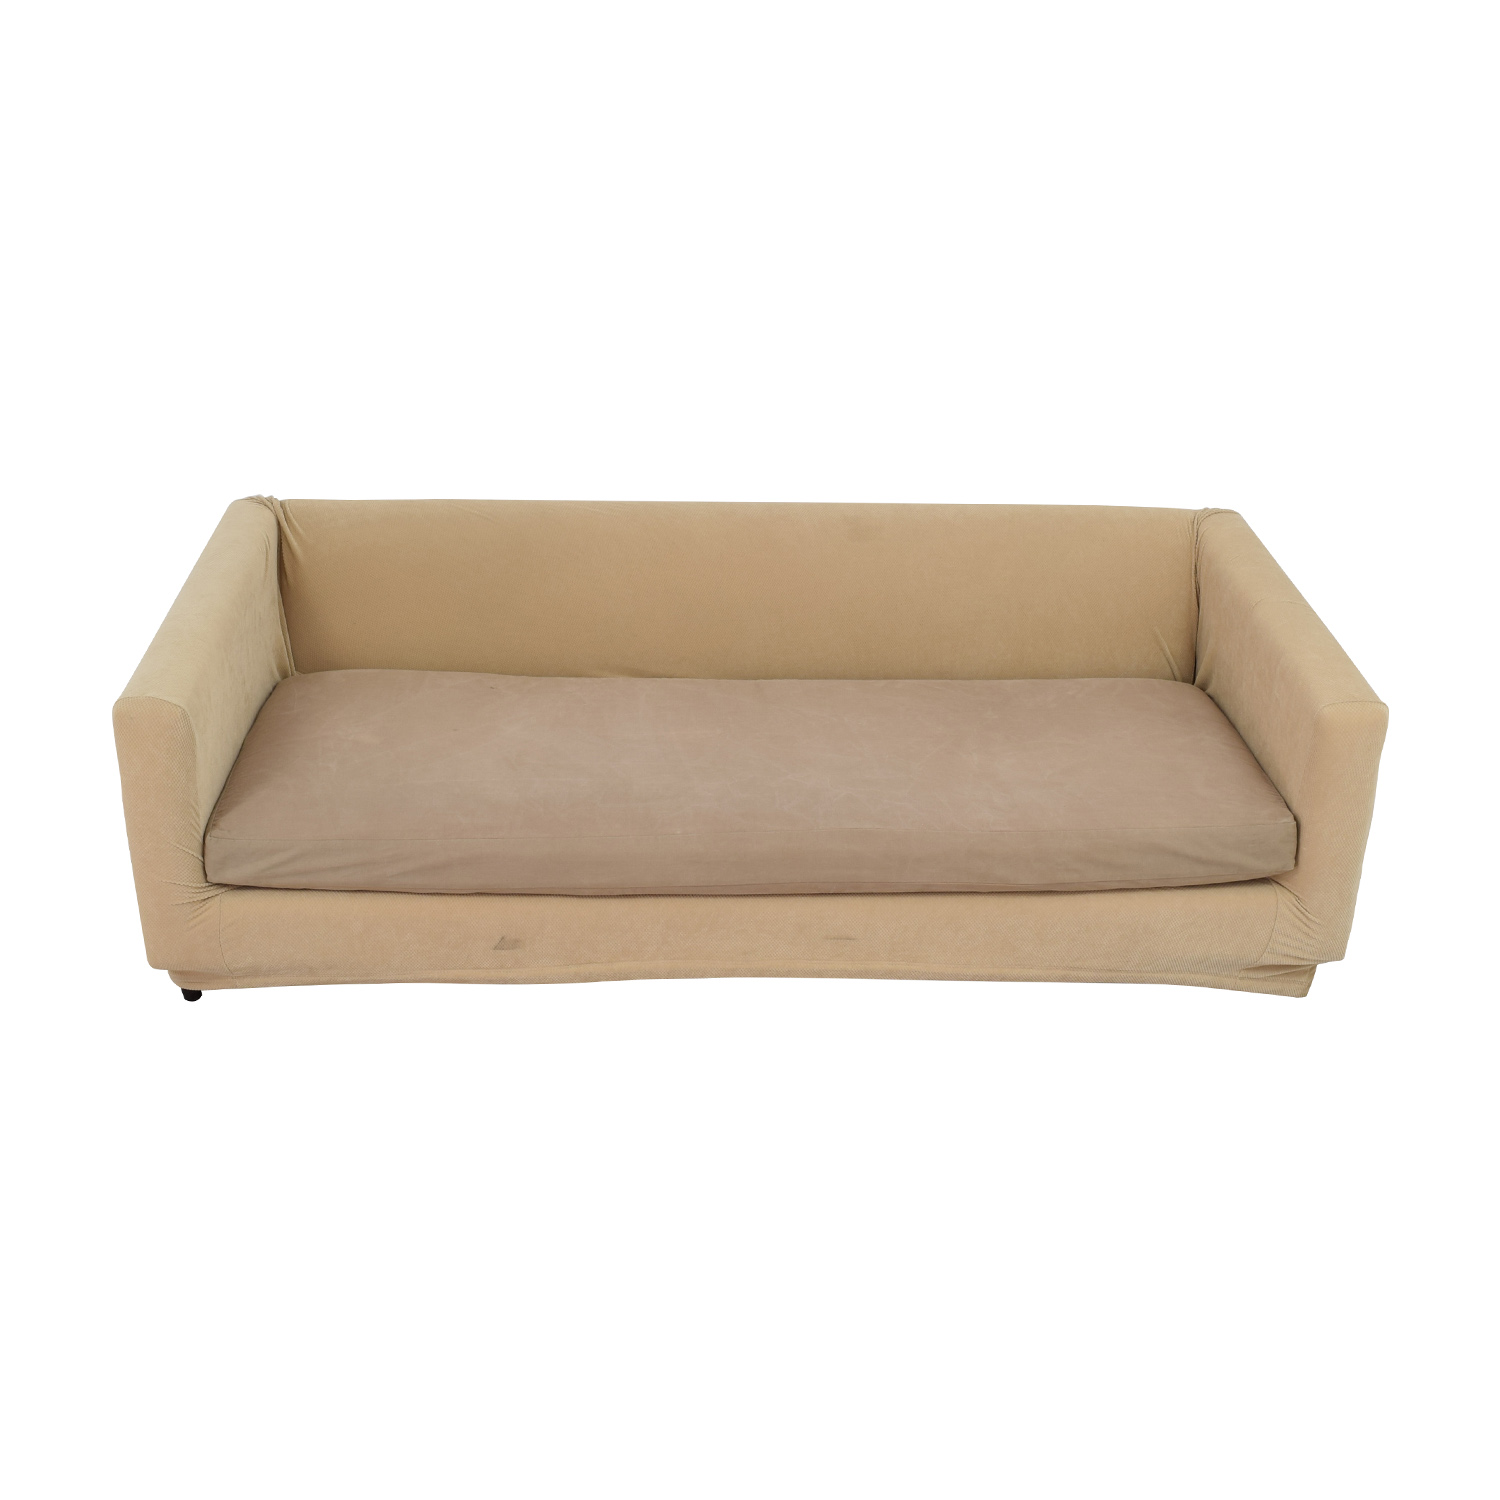 CB2 CB2 Tan Sofa Bed nyc